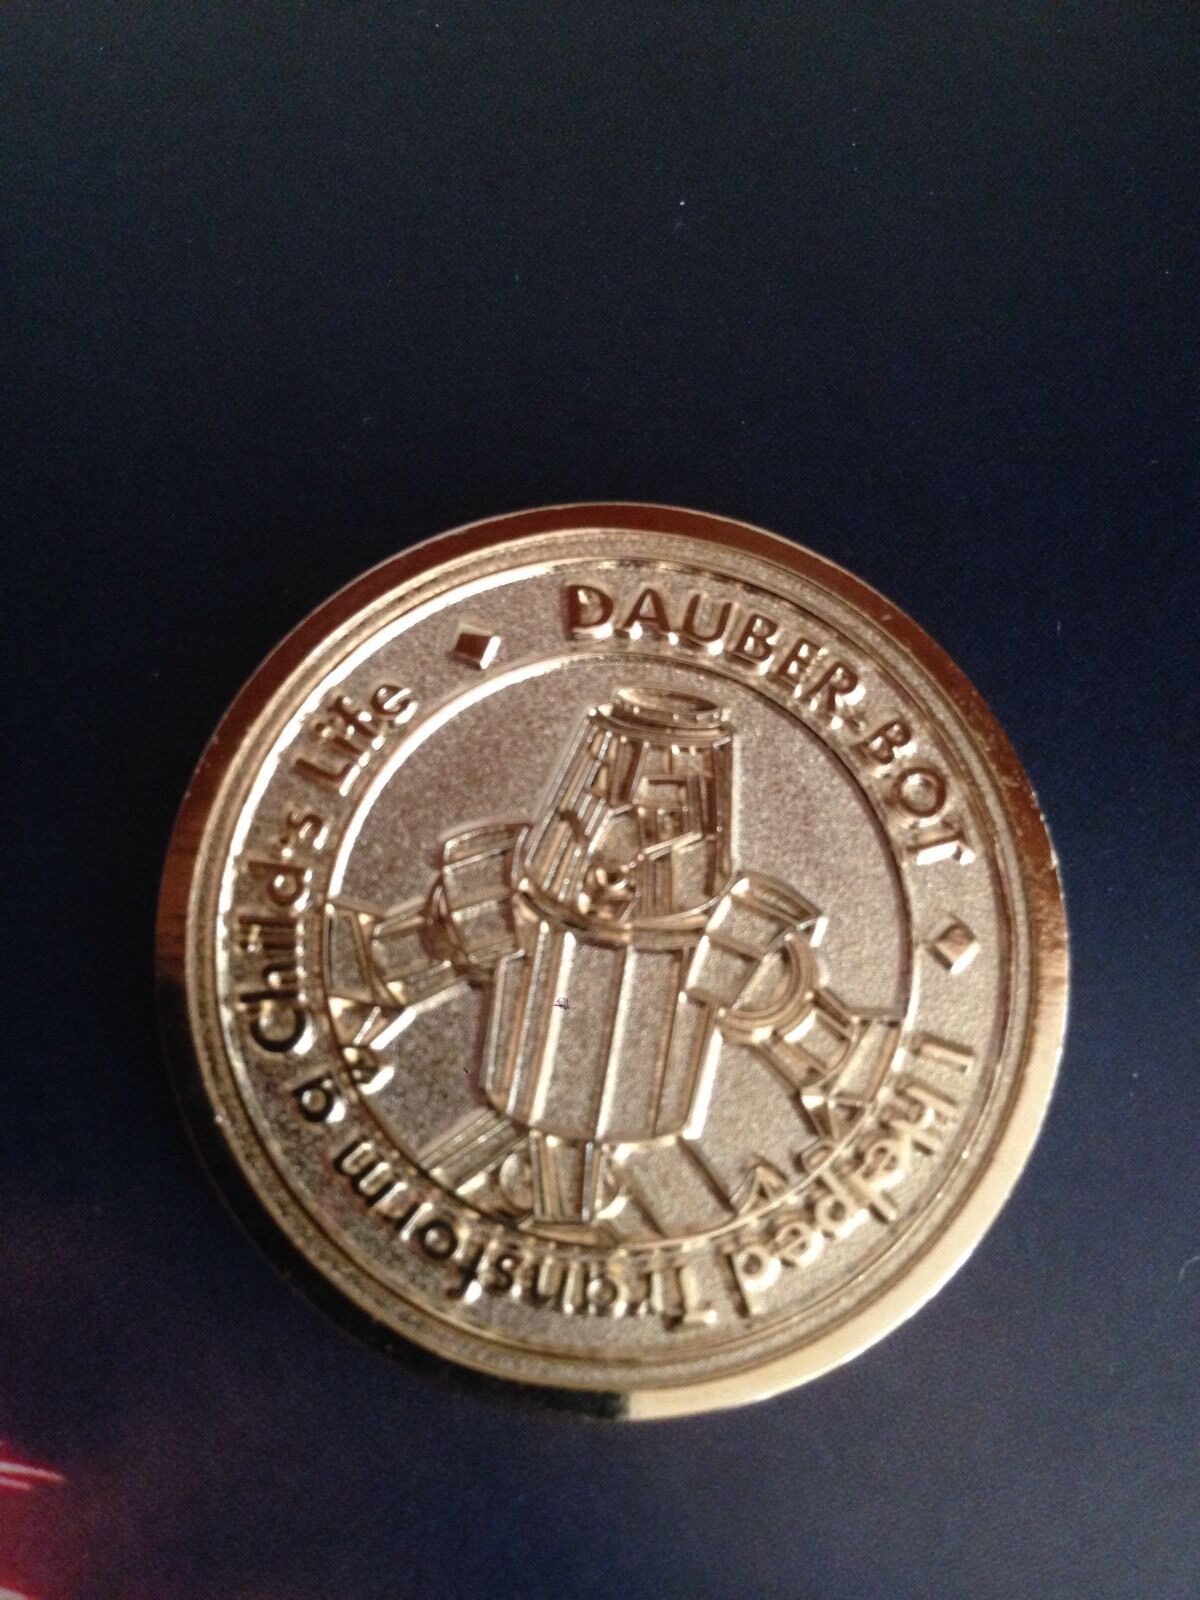 Botcon 2016 Transformers Bingo Coin Dauberbot Extremely Limited